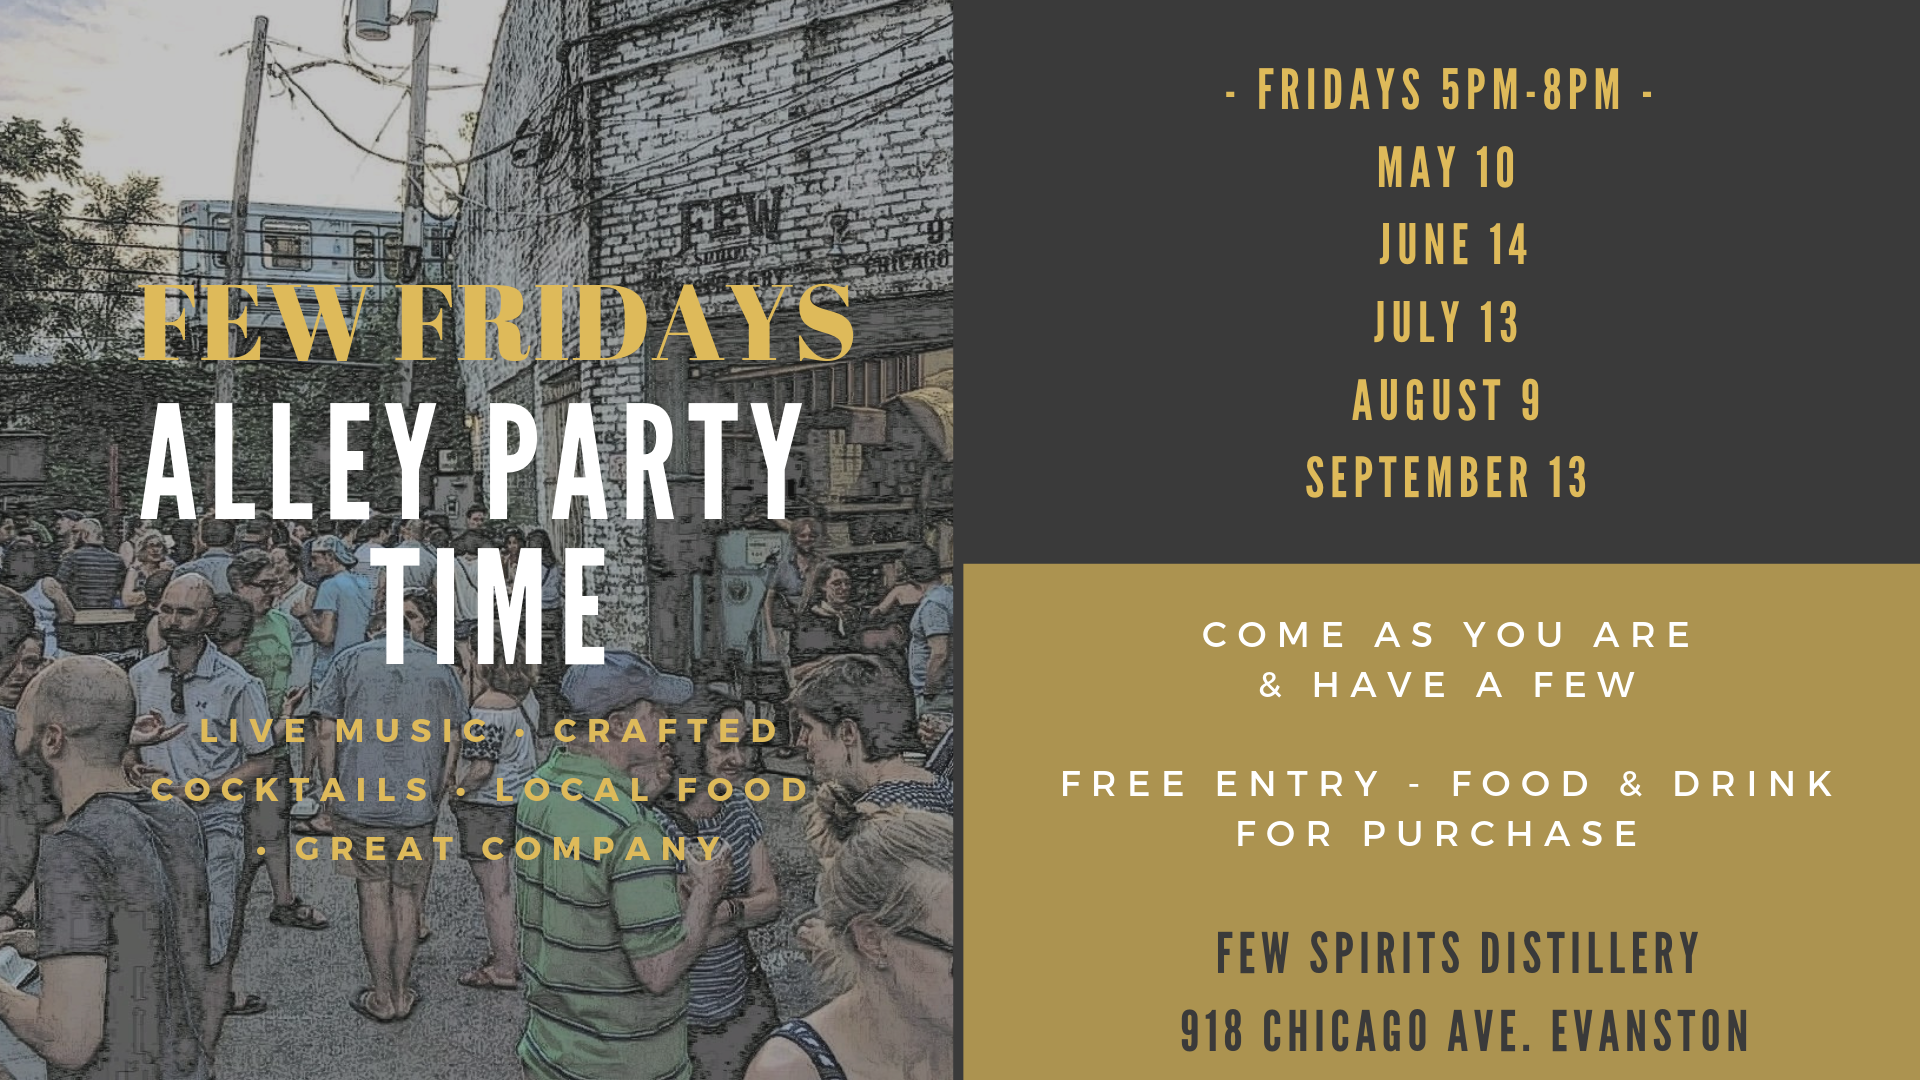 FEW FRIDAYS 2019  – Alley Party – Cocktails – Live Music – Local Food